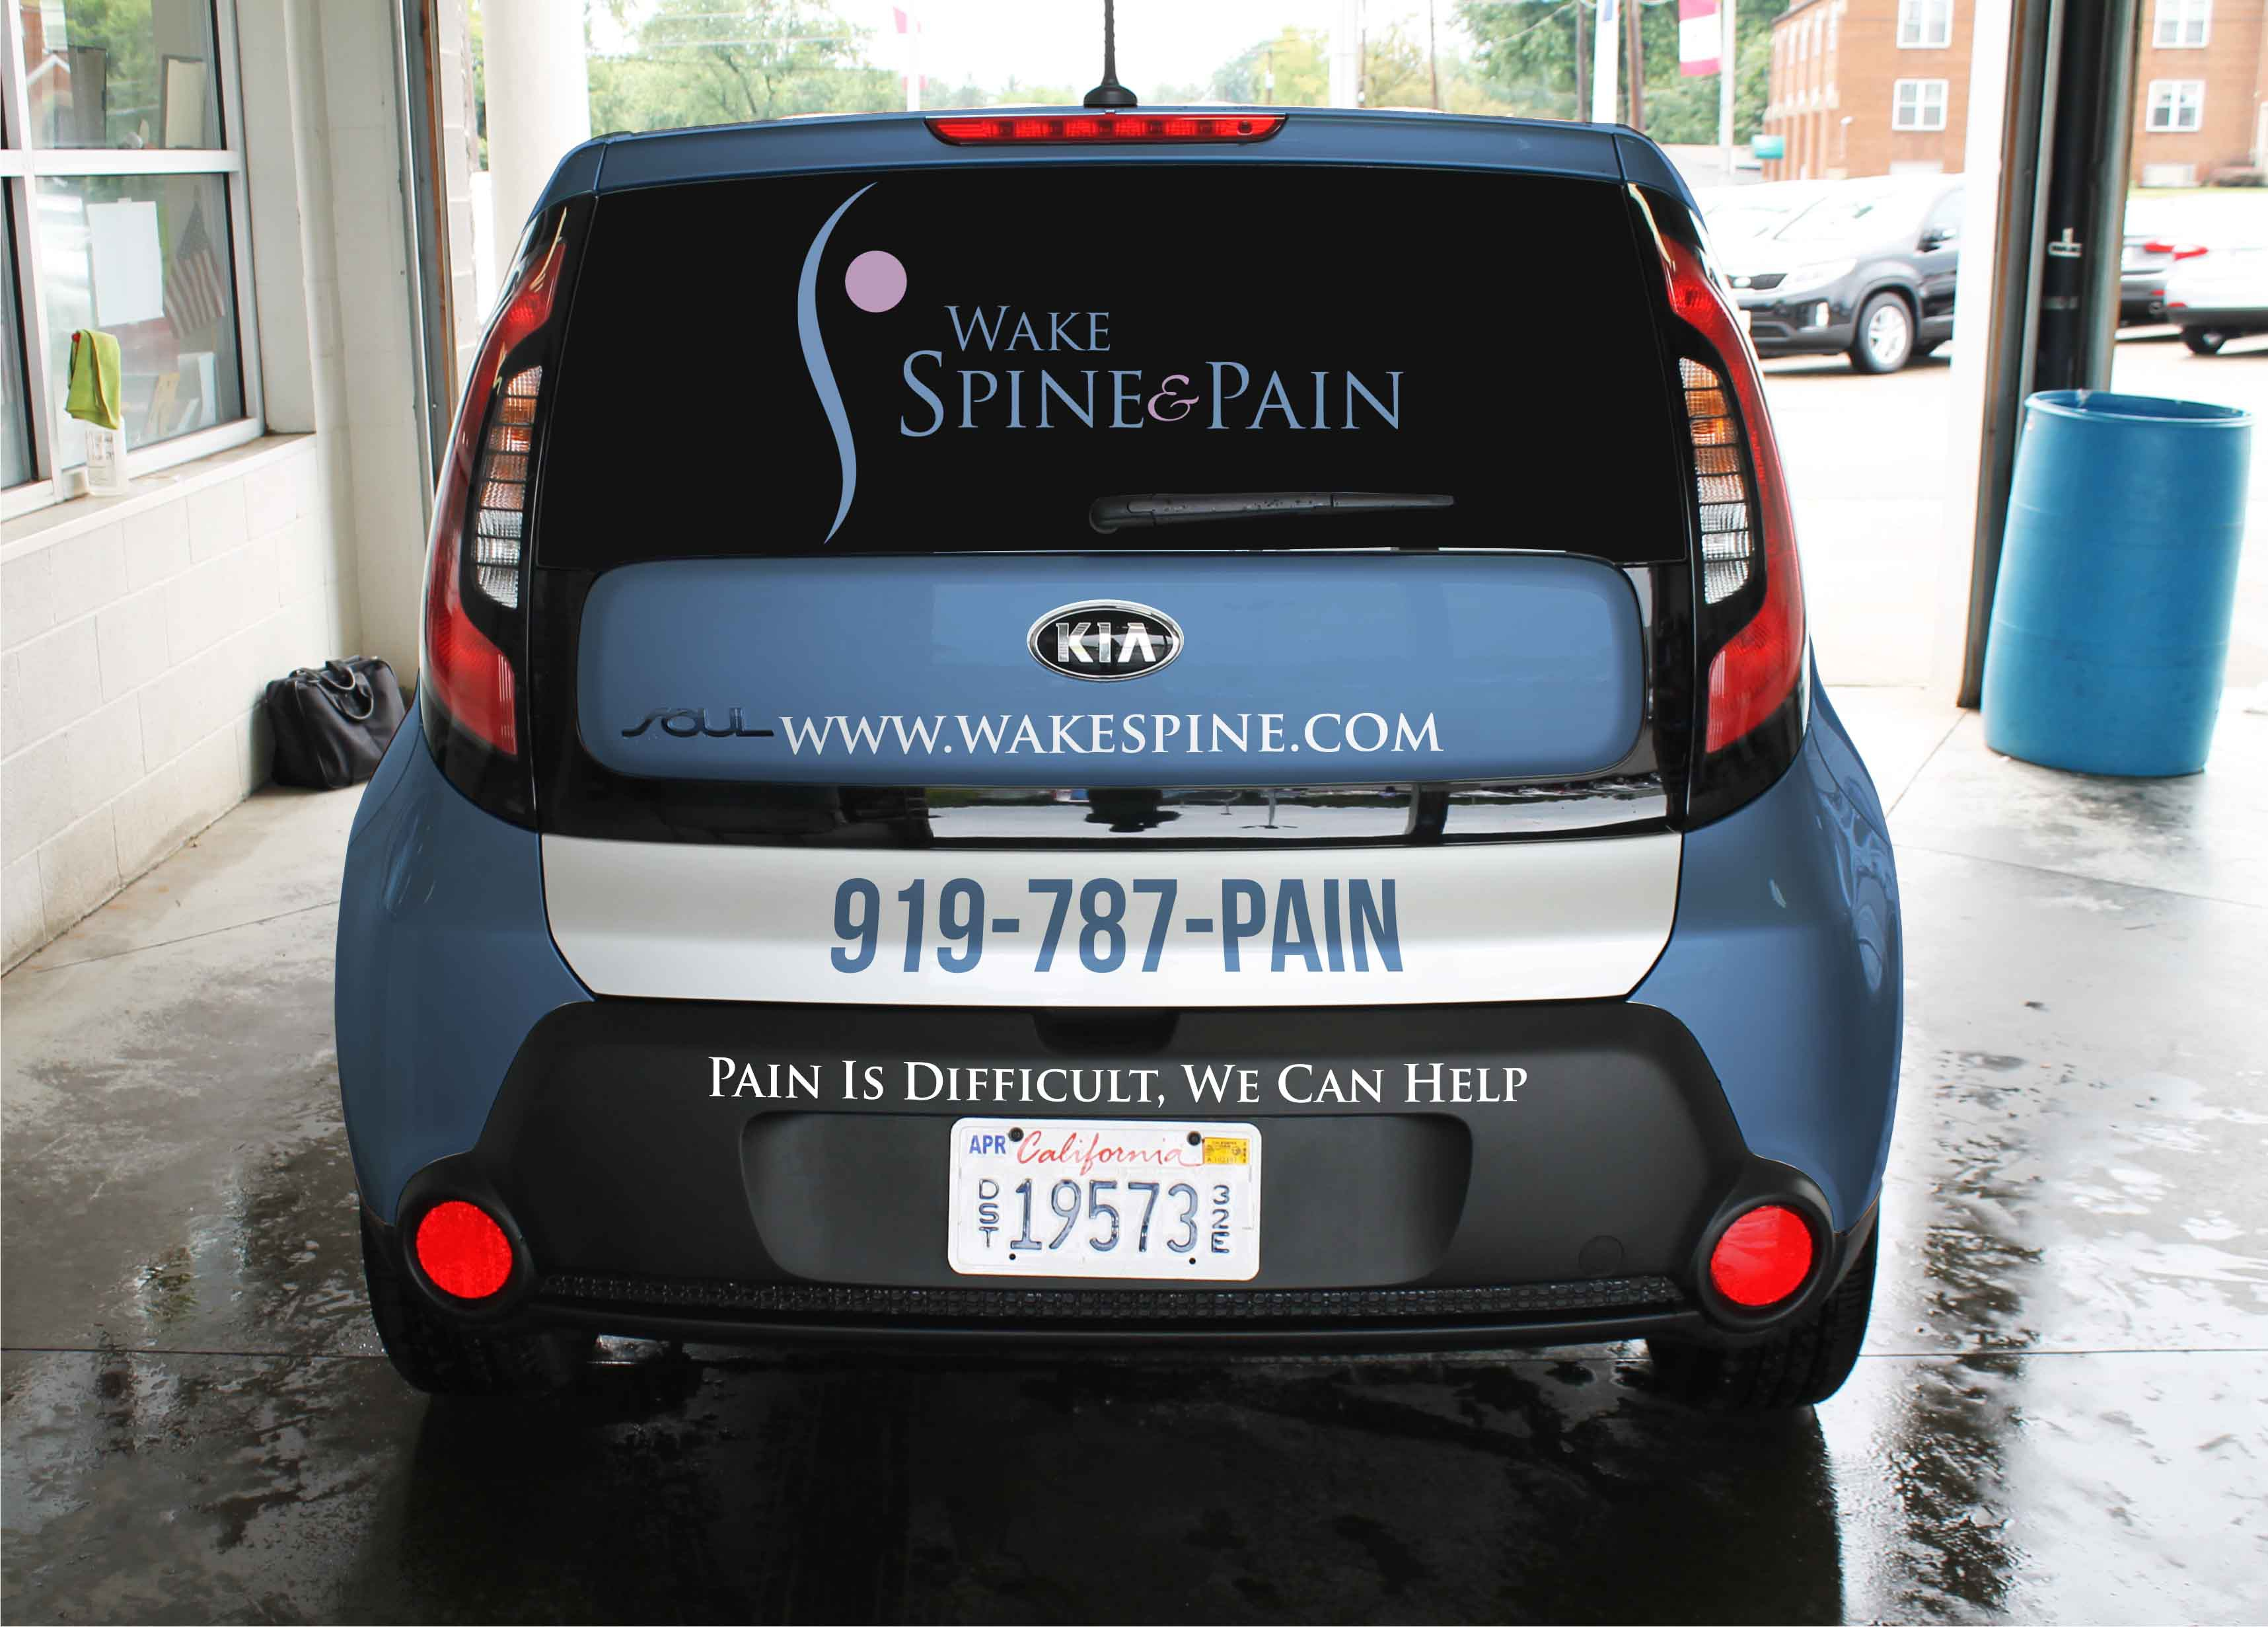 Create a tasteful yet catchy car wrap (Kia sol 2016) design to motivate a person in pain to call us to seek treatment.